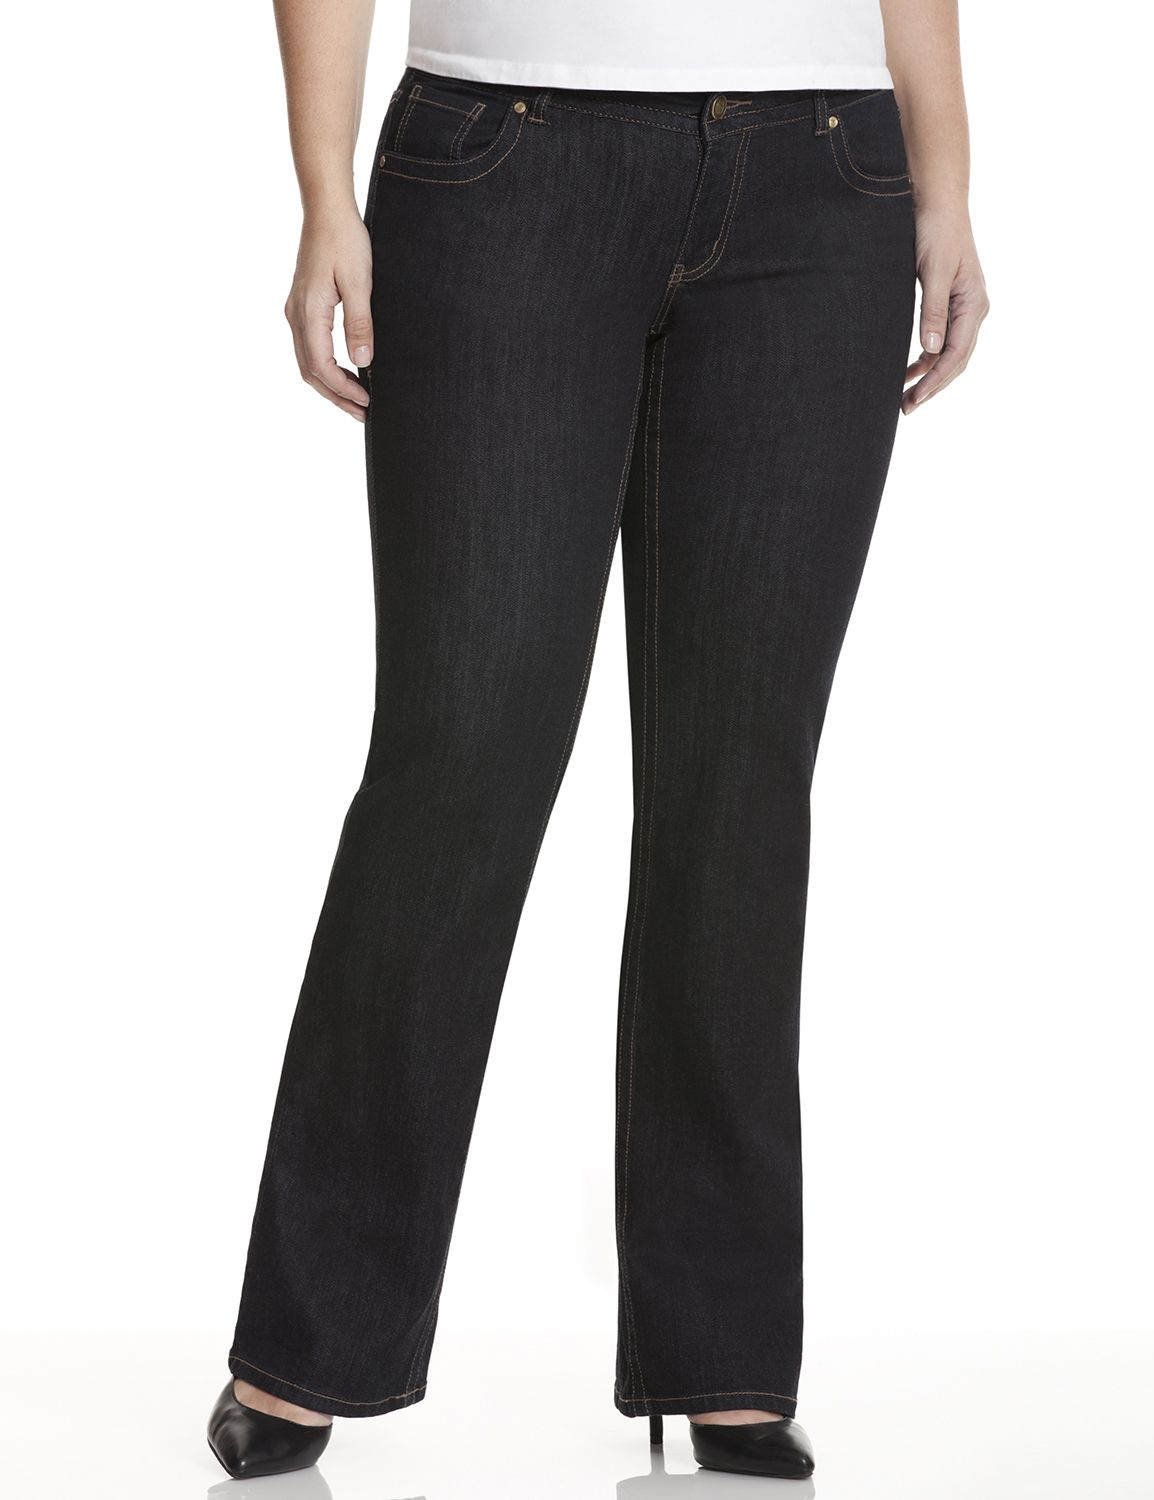 Plus Size Bootcut Jeans & Denim for Women | Lane Bryant